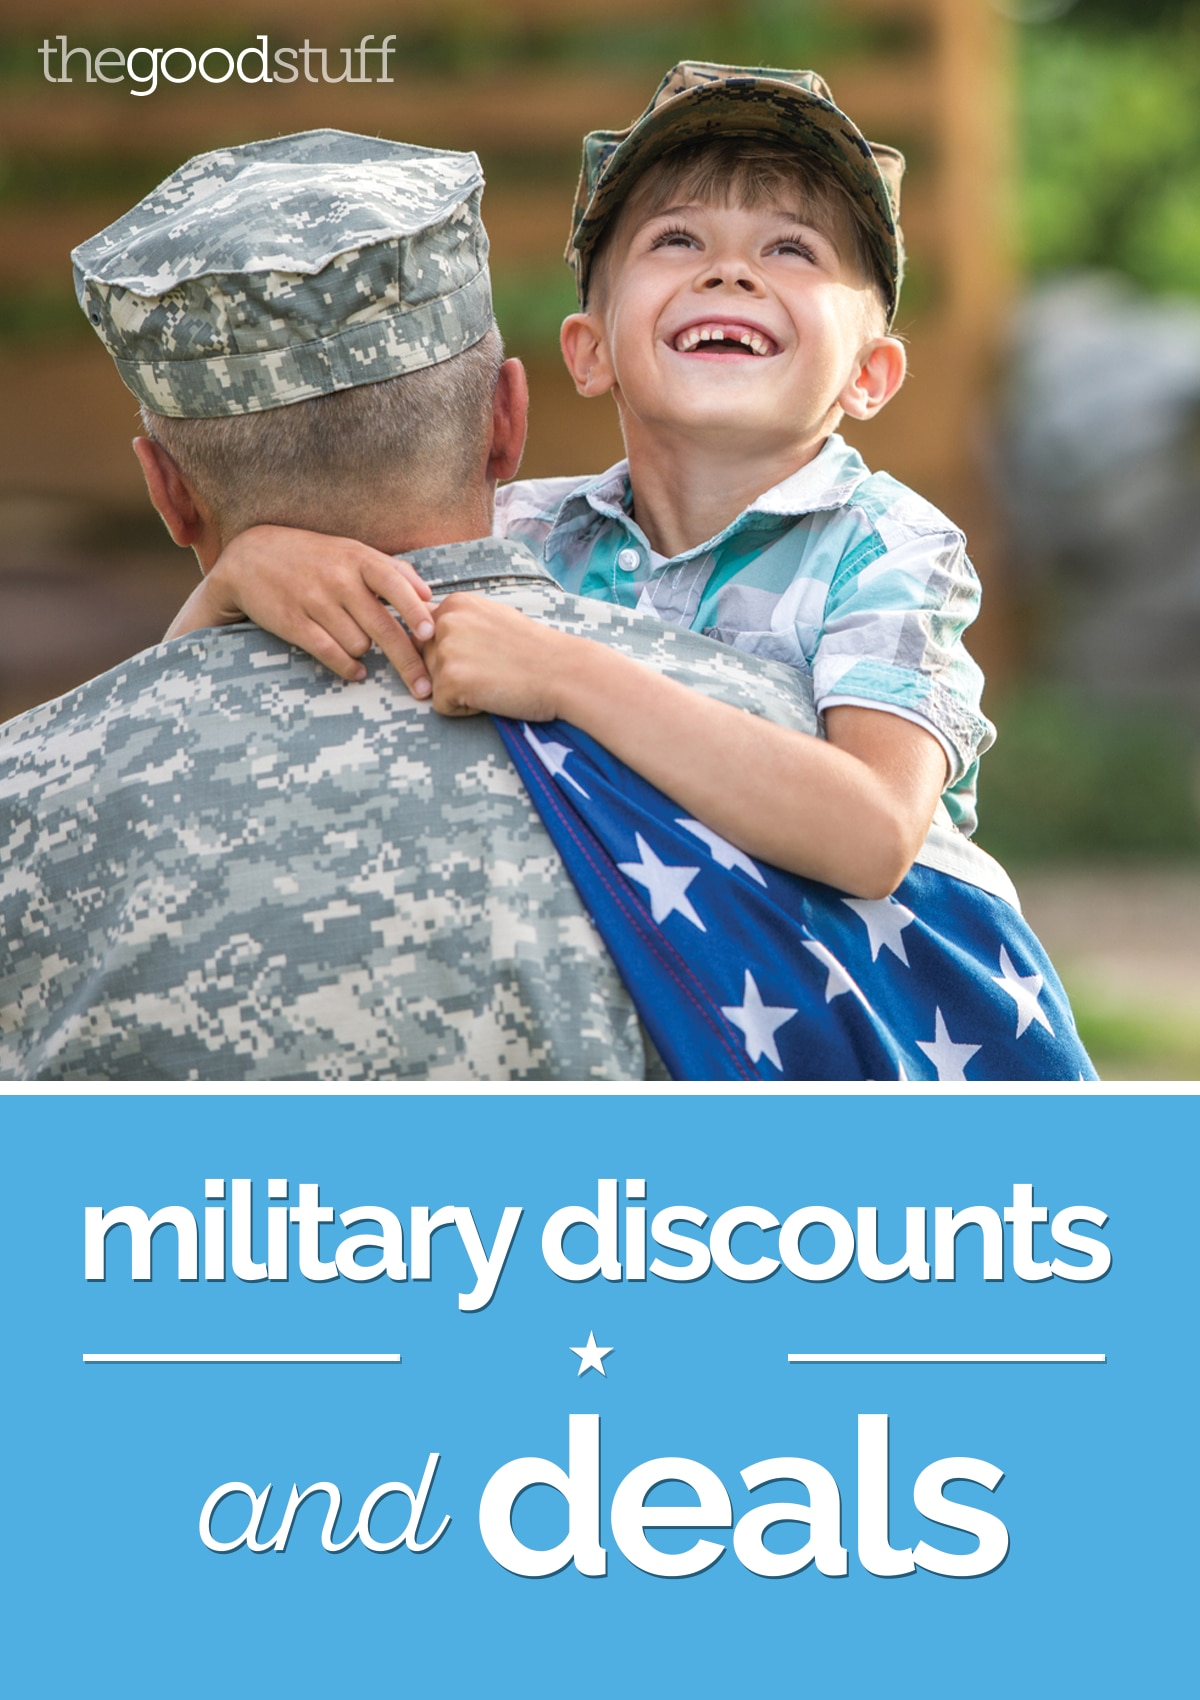 List of 350+ Military Discounts and Deals | thegoodstuff